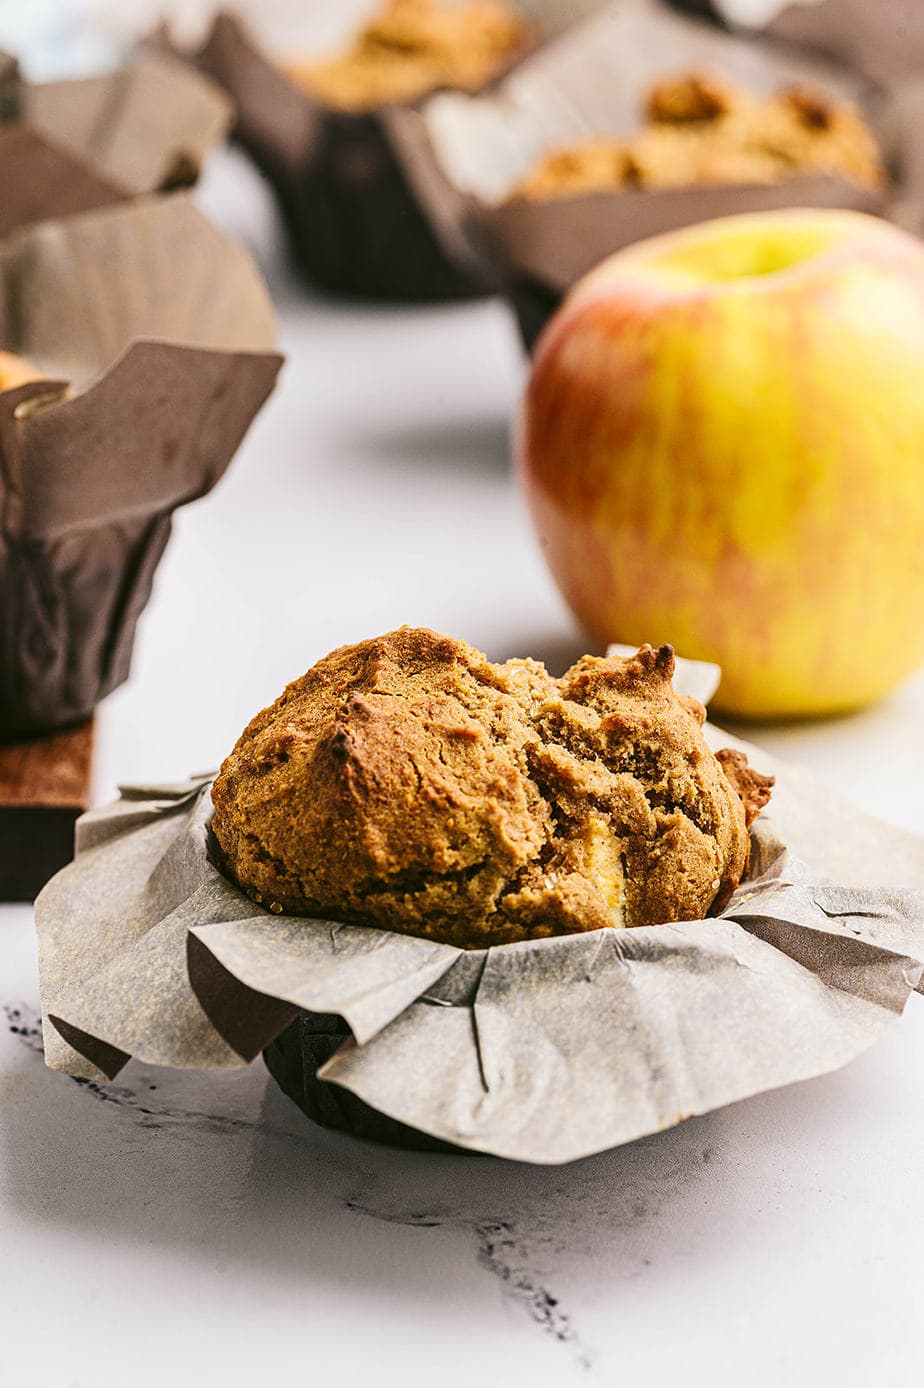 Side view: Healthy apple muffin wrapped in parchment, with many muffins in the background